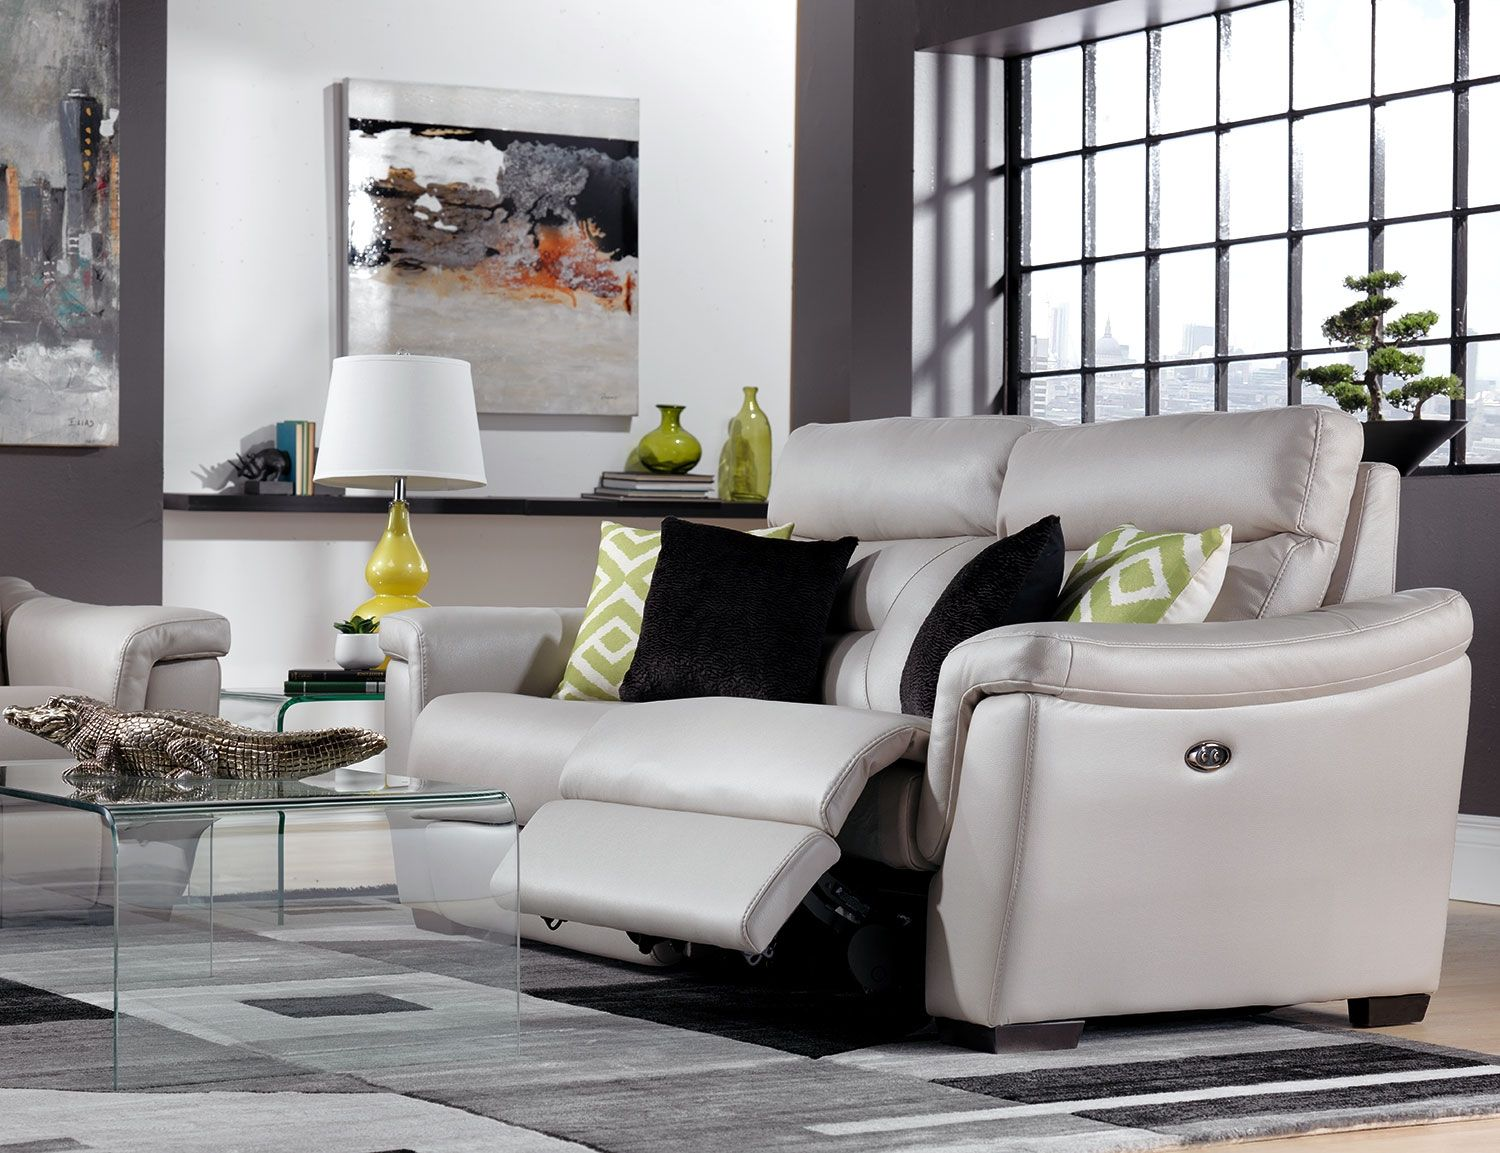 Euro Lounge. Create The Look And Feel Of A Chic, Modern European Living Room